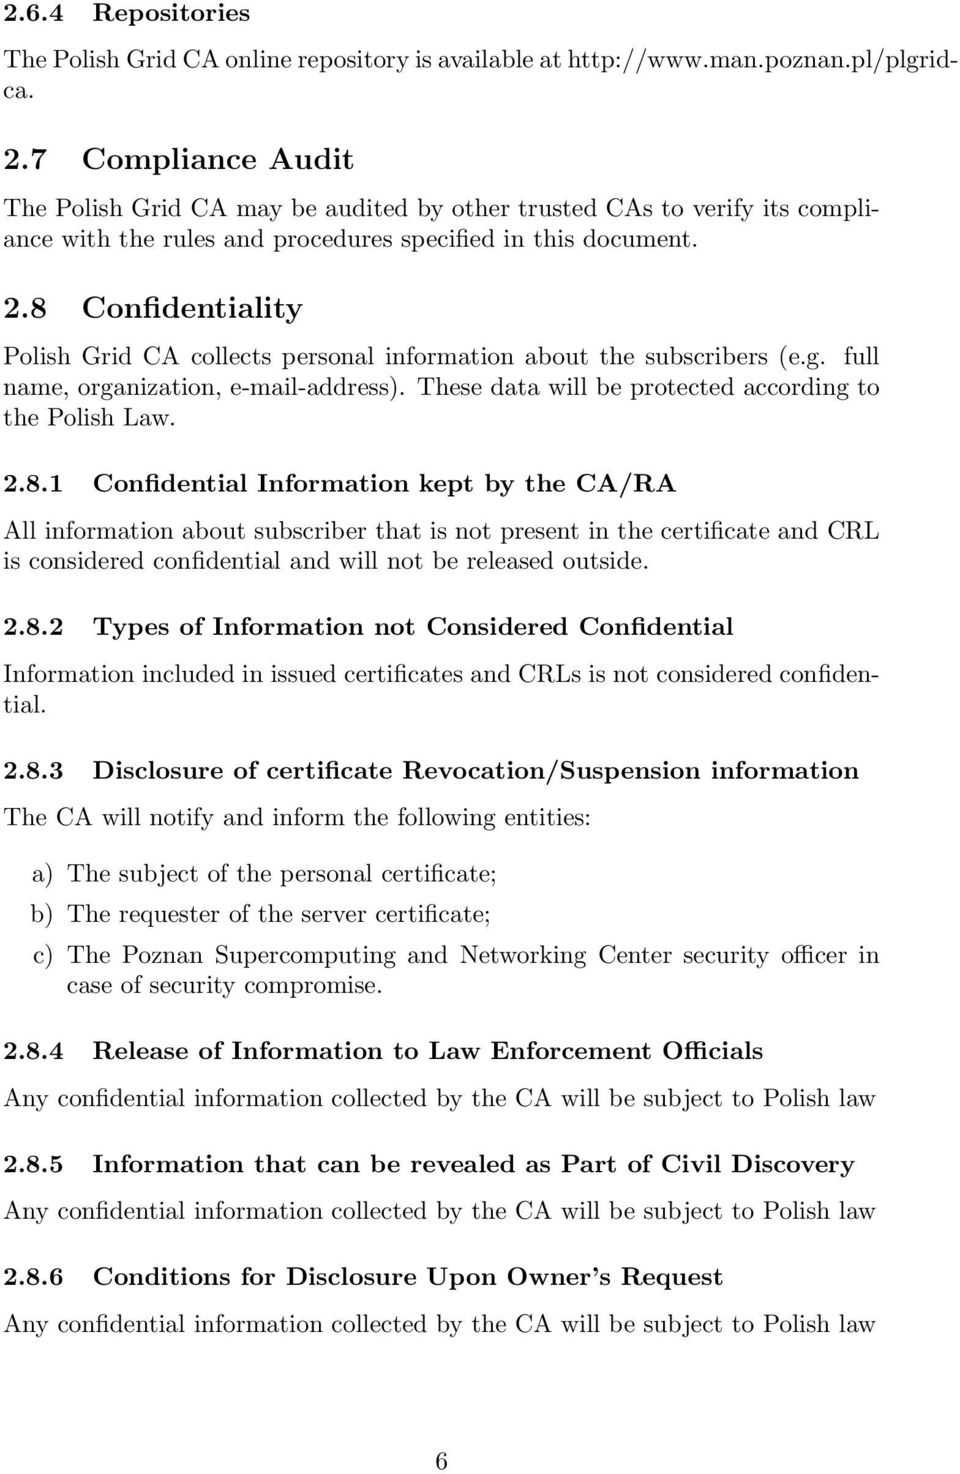 8 Confidentiality Polish Grid CA collects personal information about the subscribers (e.g. full name, organization, e-mail-address). These data will be protected according to the Polish Law. 2.8.1 Confidential Information kept by the CA/RA All information about subscriber that is not present in the certificate and CRL is considered confidential and will not be released outside.